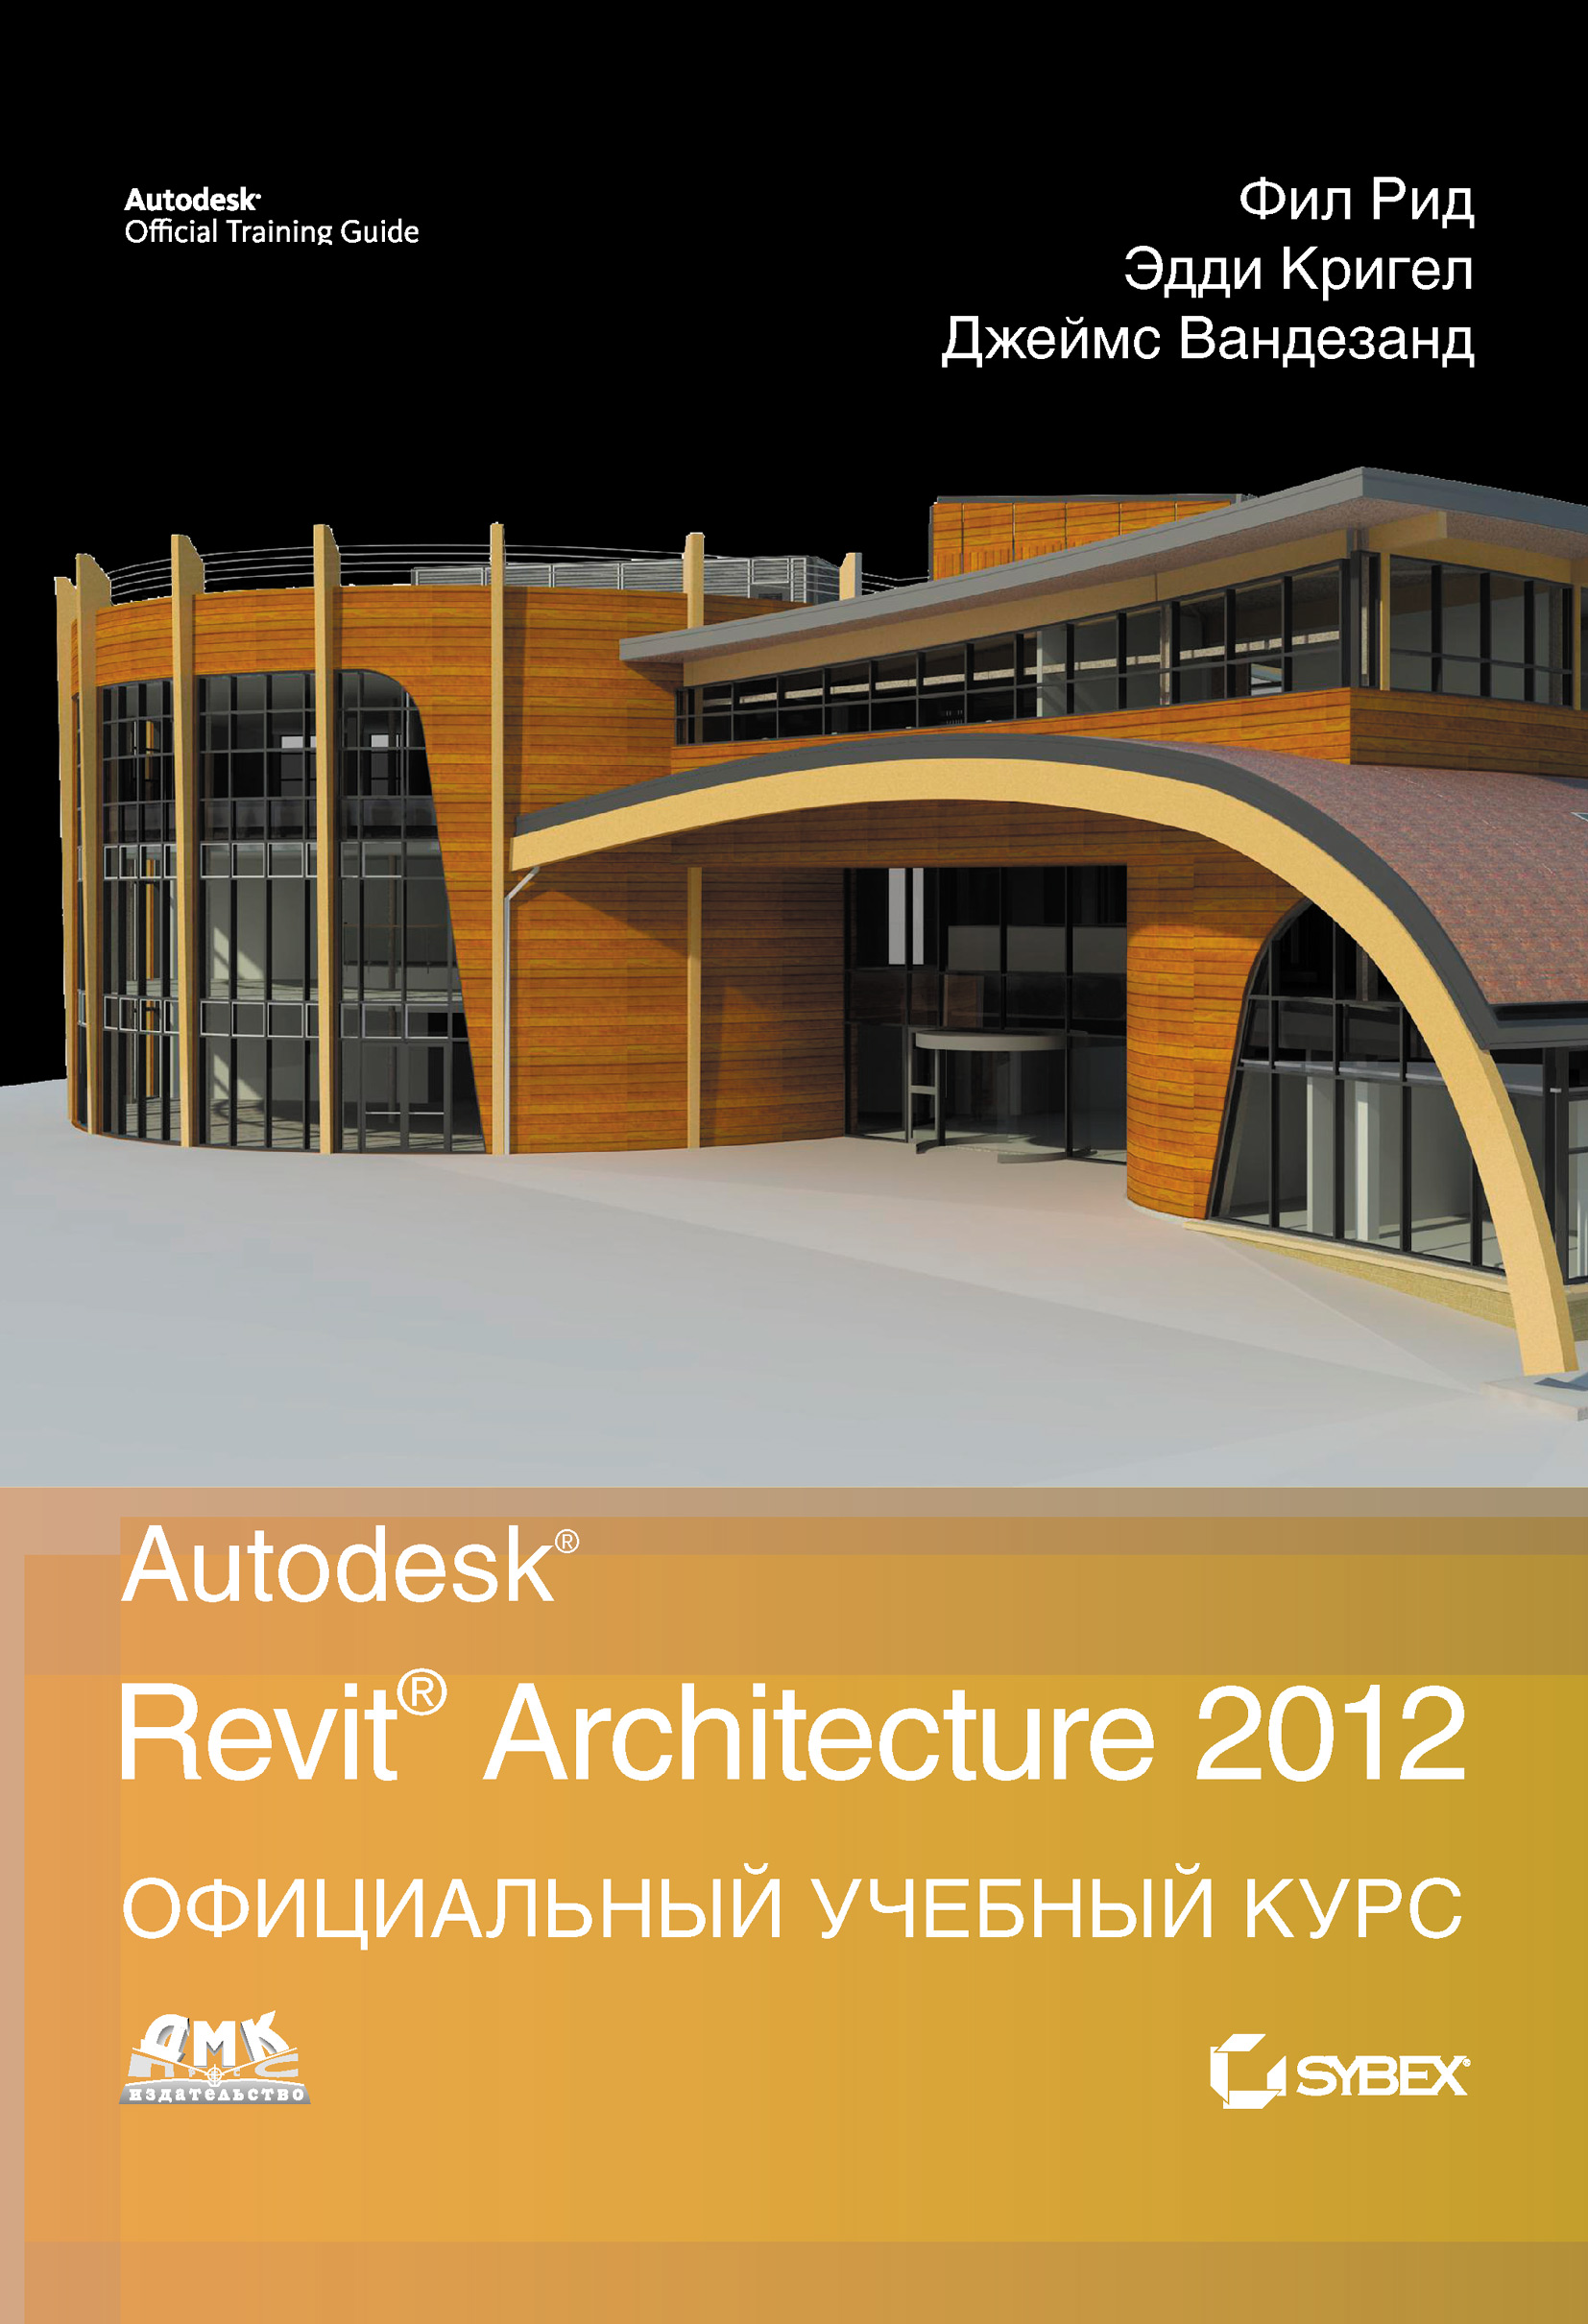 Джеймс Вандезанд Autodesk Revit Architecture 2012. Официальный учебный курс custom tulle girls dress embroidery princess dress three dimensional flower girl dress child kid wedding party pageant ball gown